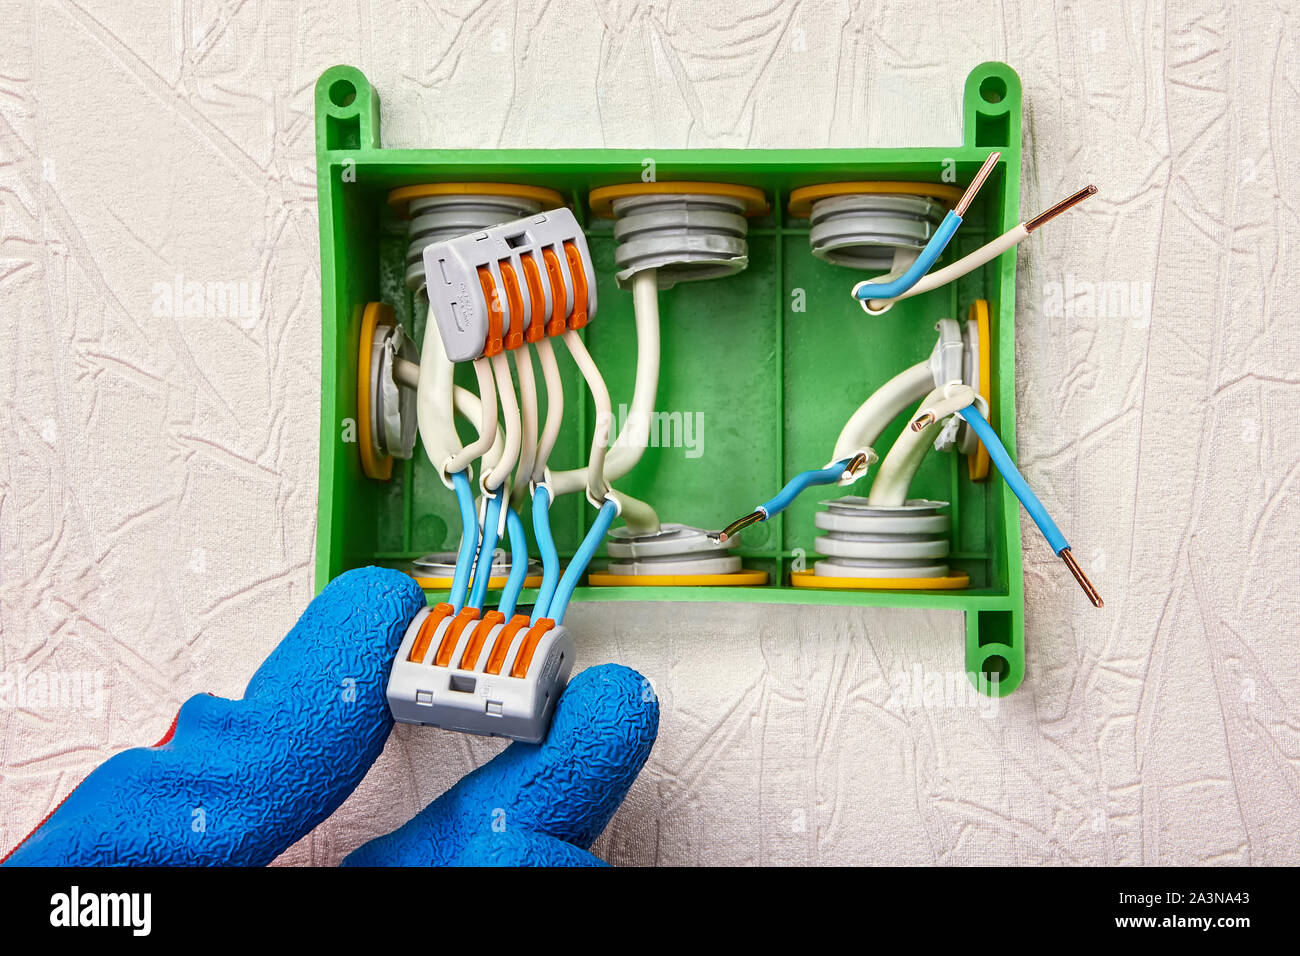 Installation of a junction box in a home electricity system ... on junction box accessories, junction box lighting, junction box connectors, junction box concrete, junction box battery, junction box conduit, junction box electrical, junction box cable, junction box terminals, junction box power, junction box installation, junction solutions, junction box transformer, junction box dimensions, junction box connections,